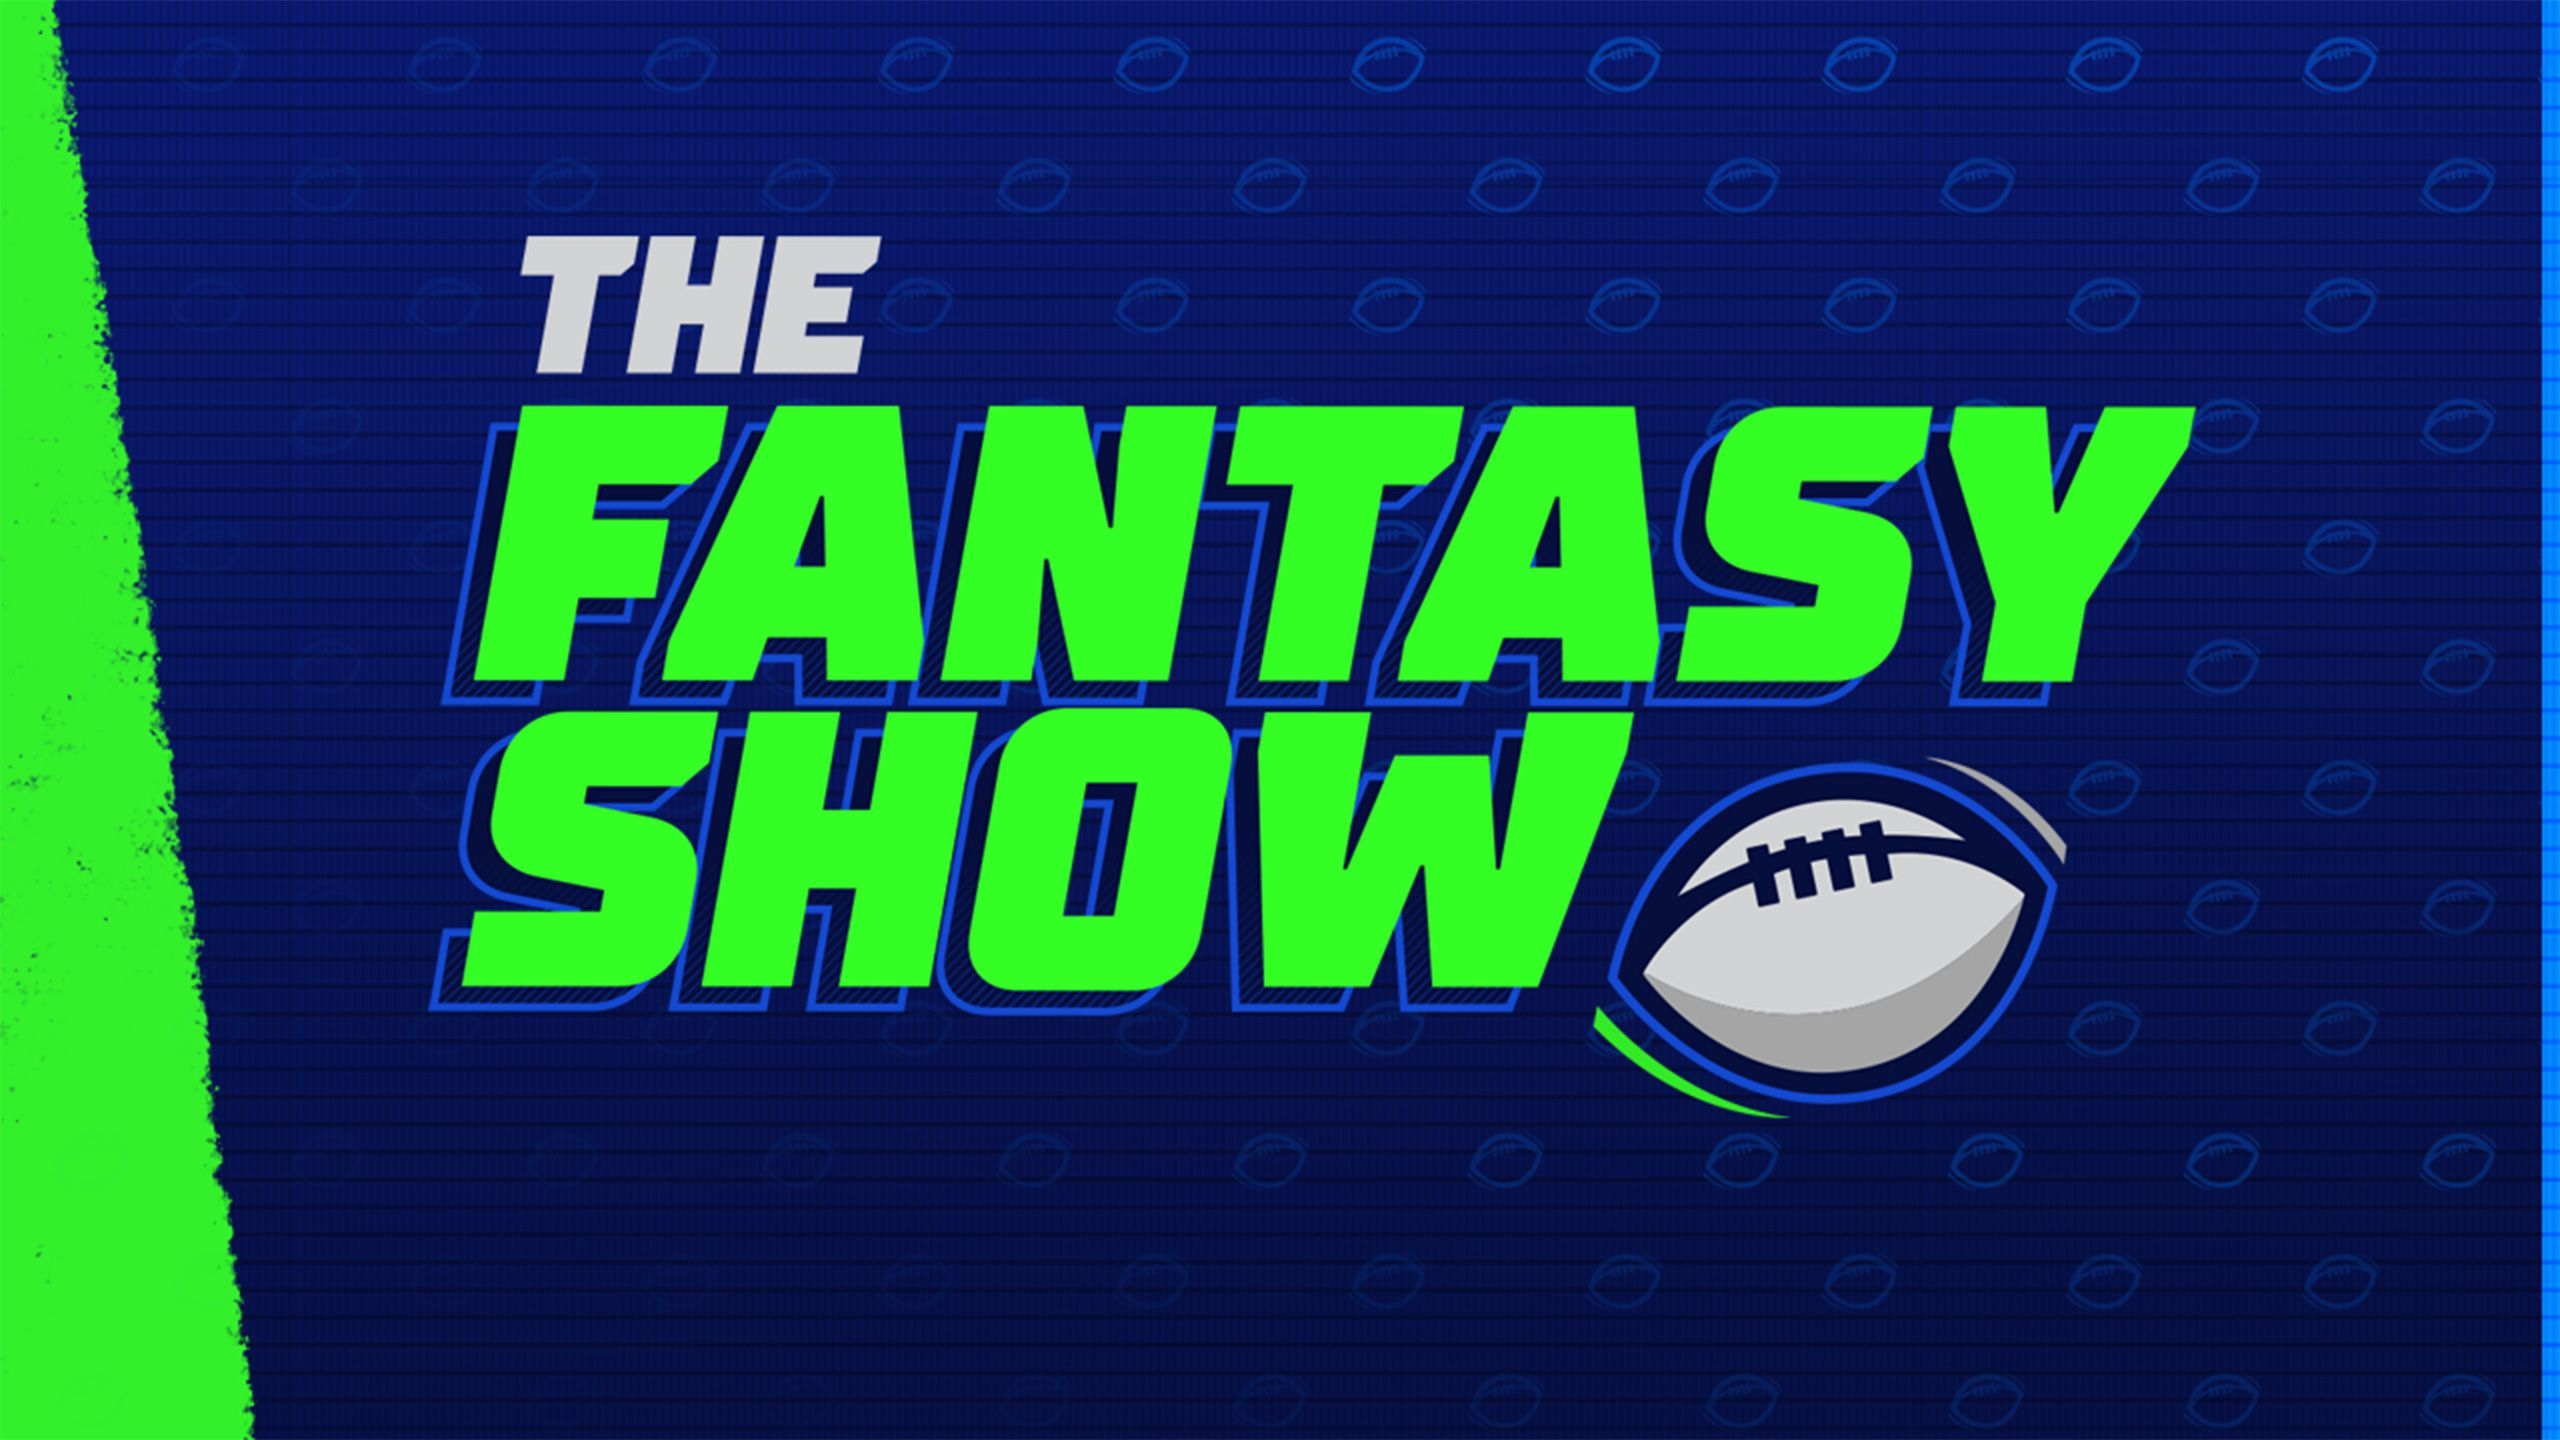 Tue, 11/21 - The Fantasy Show presented by E*Trade